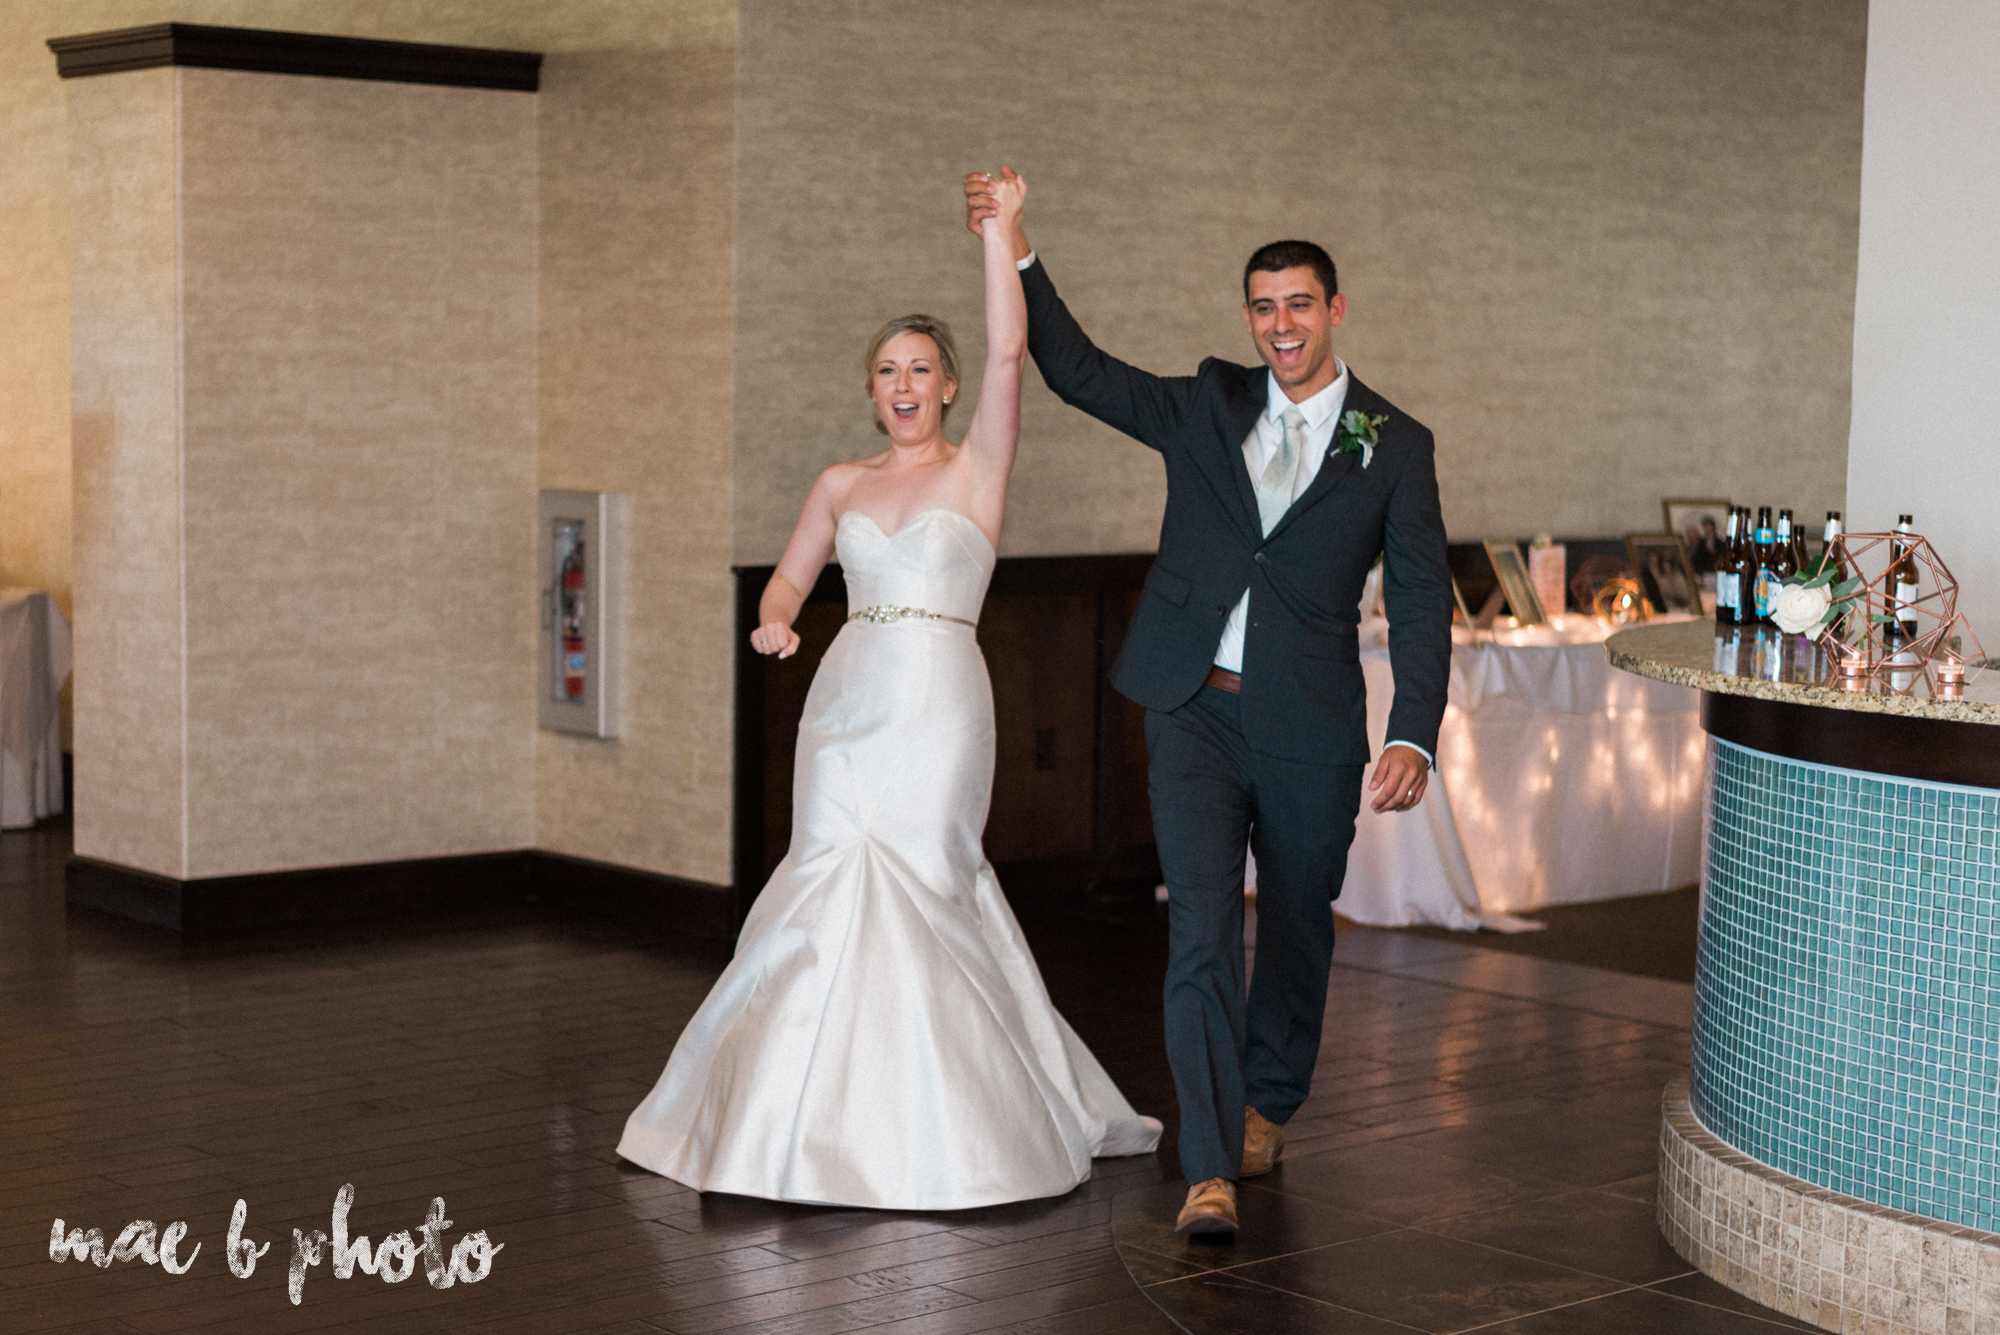 emily and michael's industrial chic summer country club wedding at the lake club in poland ohio photographed by cleveland wedding photographer mae b photo-113.jpg